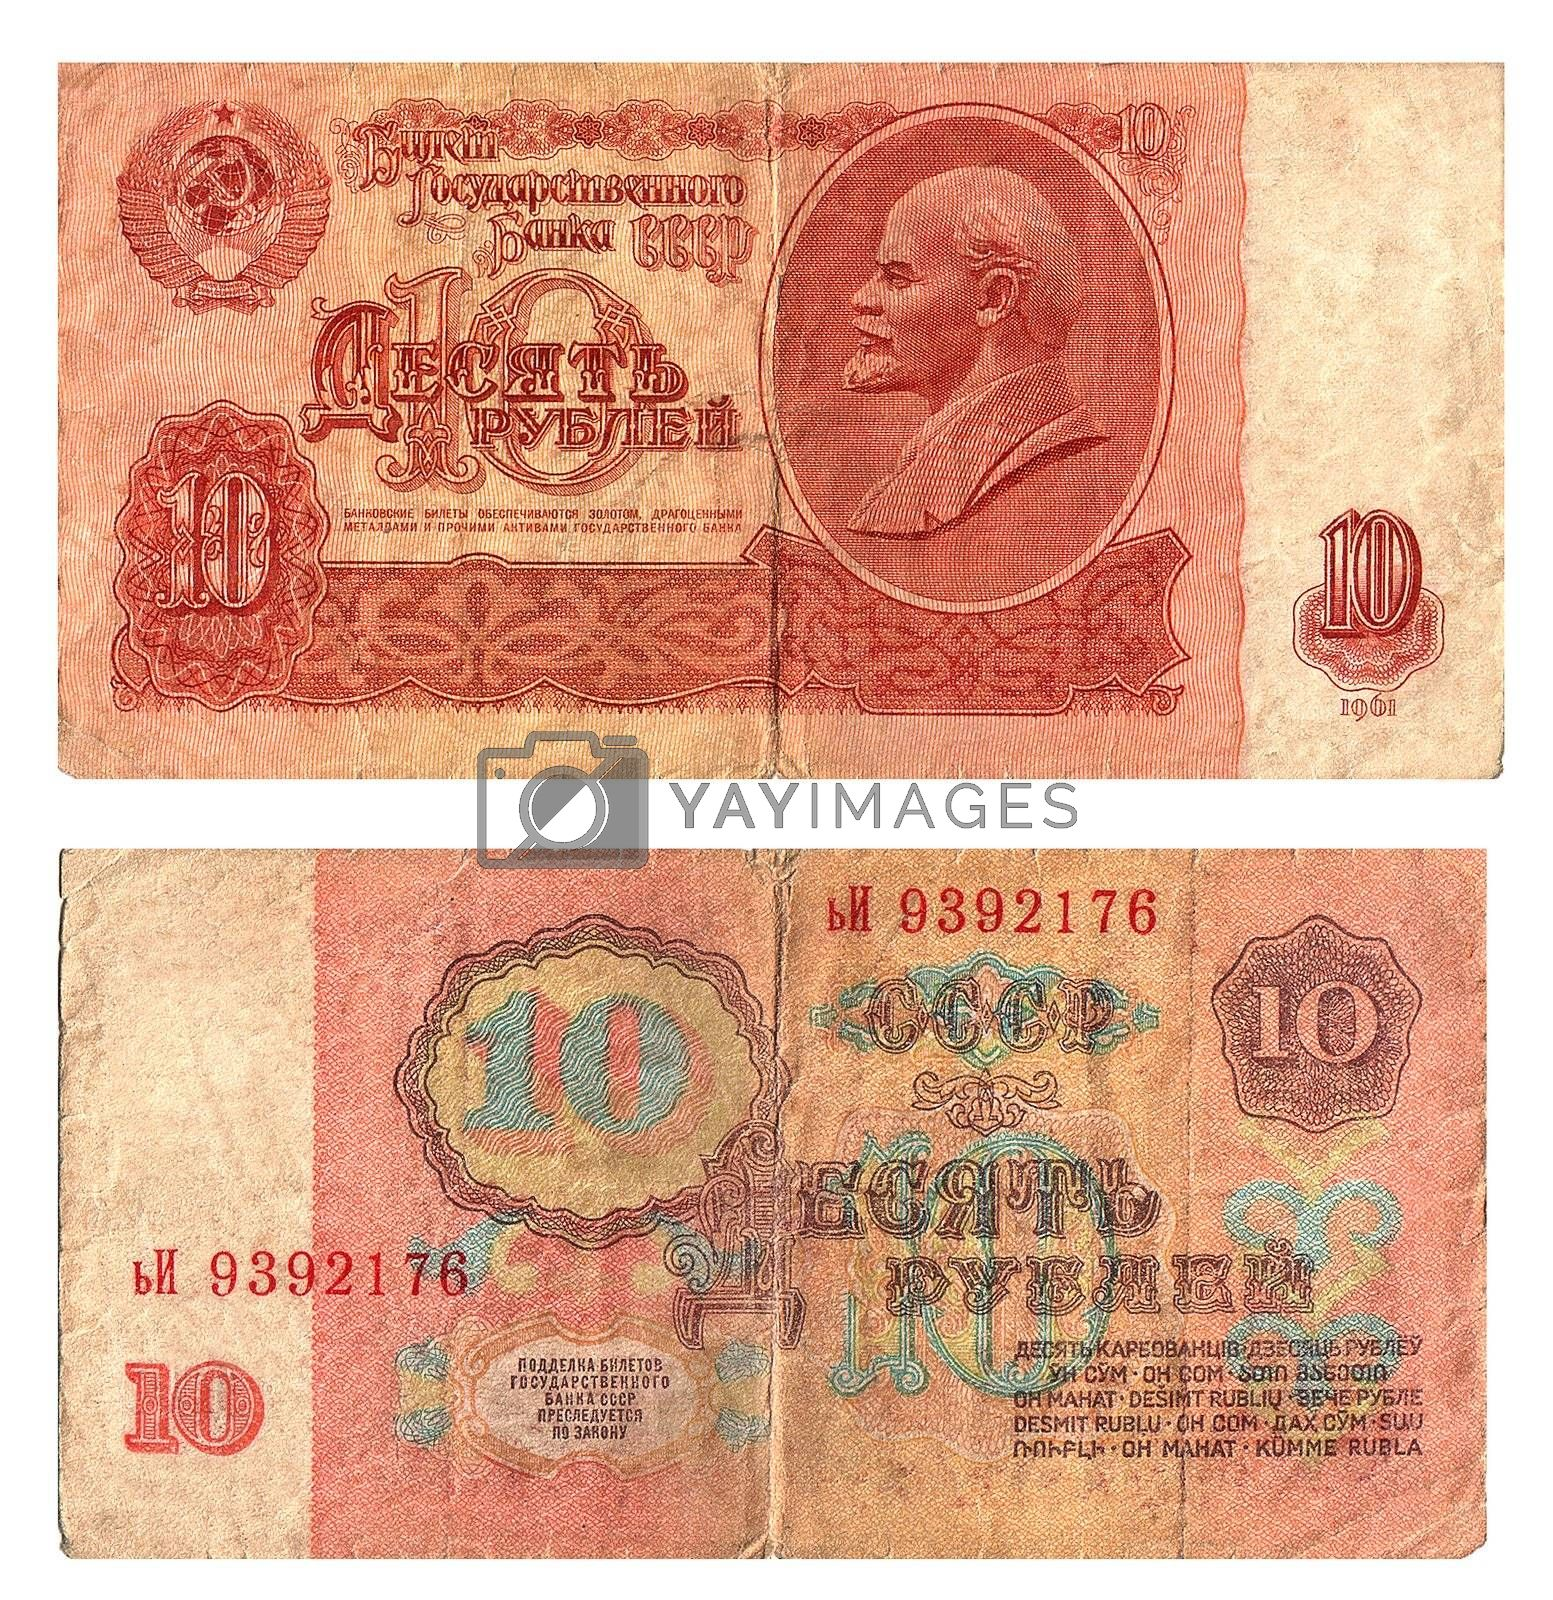 Paper money face value 10 rouble of old design